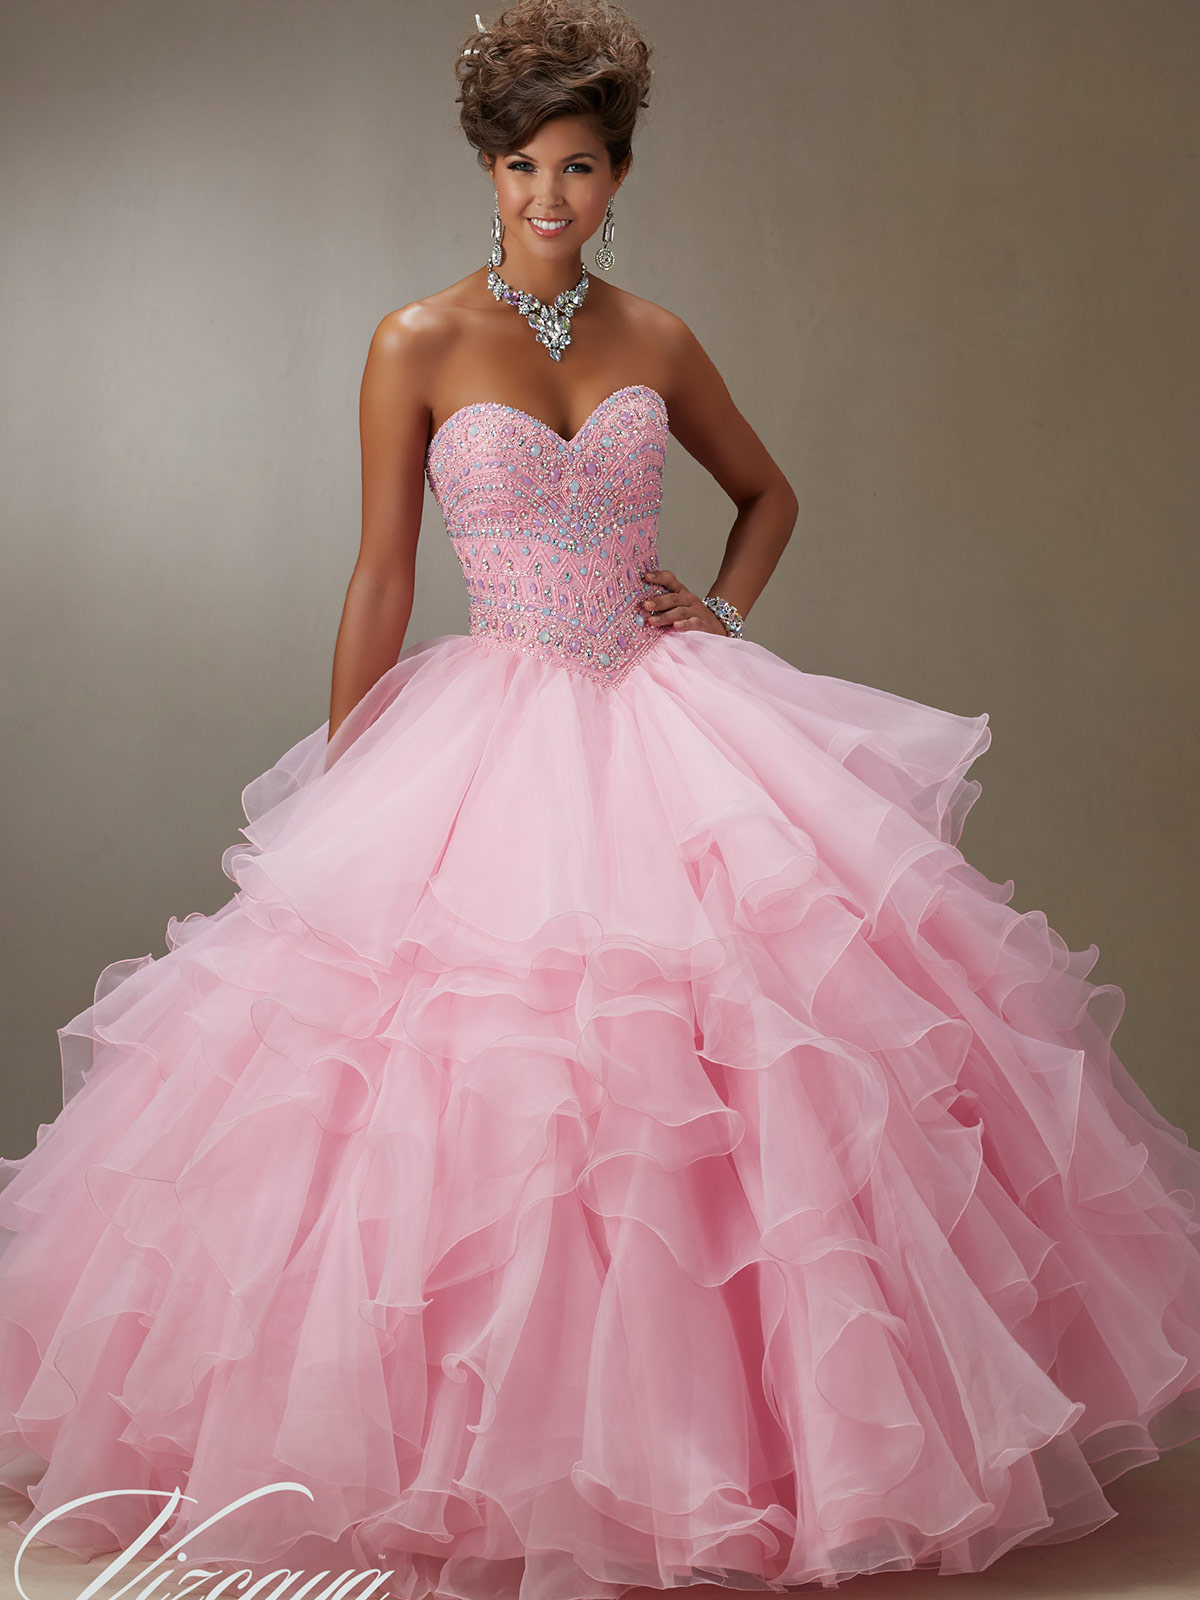 Vizcaya Quinceañera 89061 Beaded Bodice Ball Gown|DimitraDesigns.com